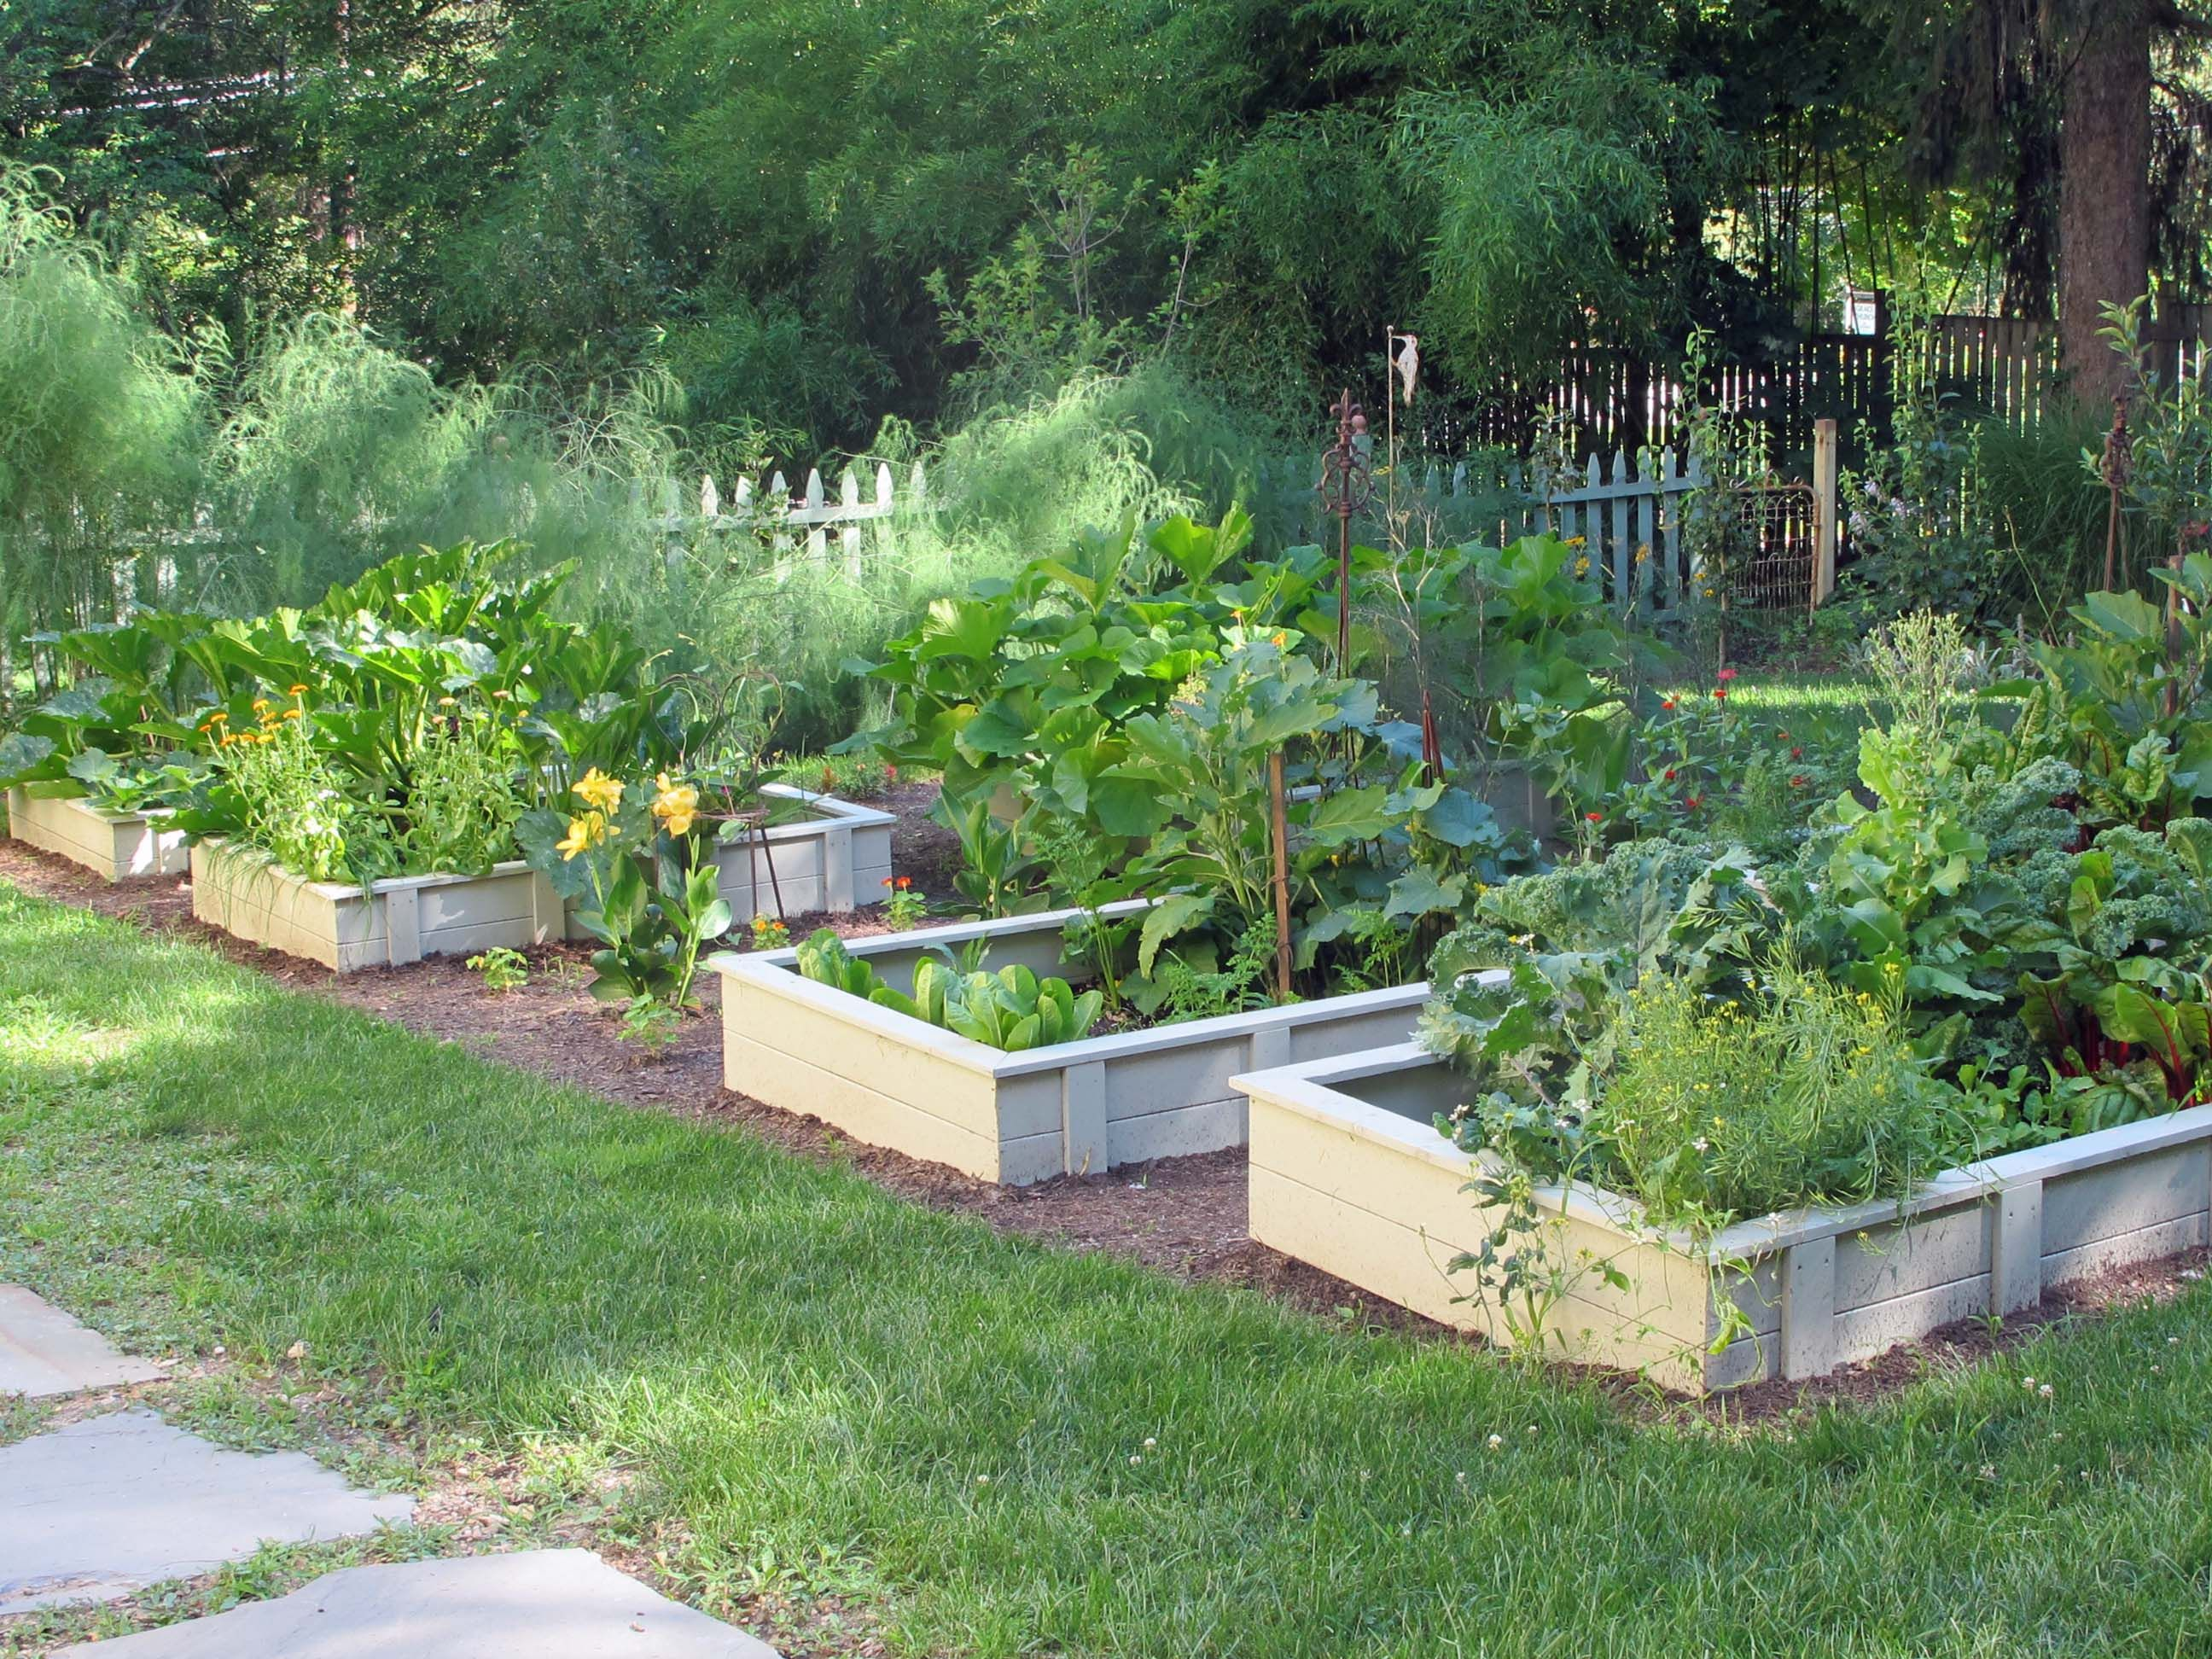 Raised vegetable garden design ideas veg garden beds for Backyard vegetable garden design ideas